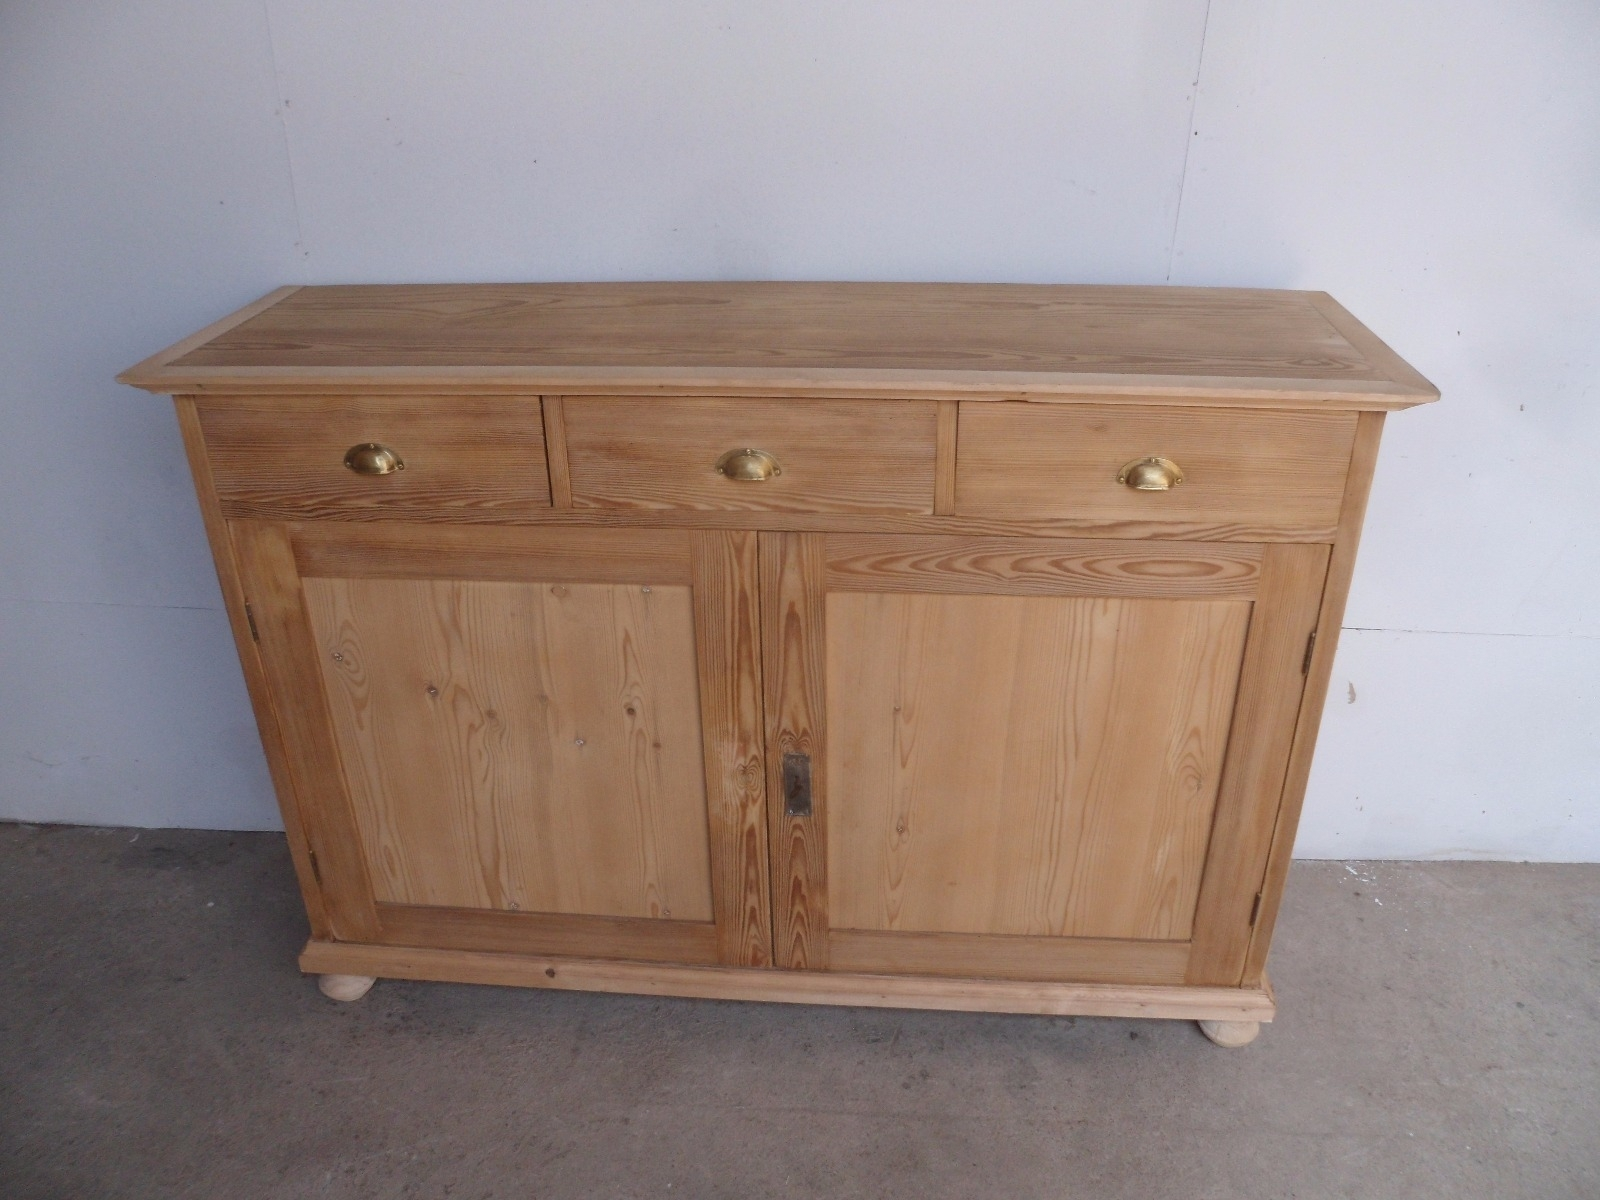 Inspiration about Large Narrow Old Pine 2 Door 3 Drawer Kitchen Dresser Base To Wax Regarding 2017 Aged Pine 3 Drawer 2 Door Sideboards (#2 of 20)